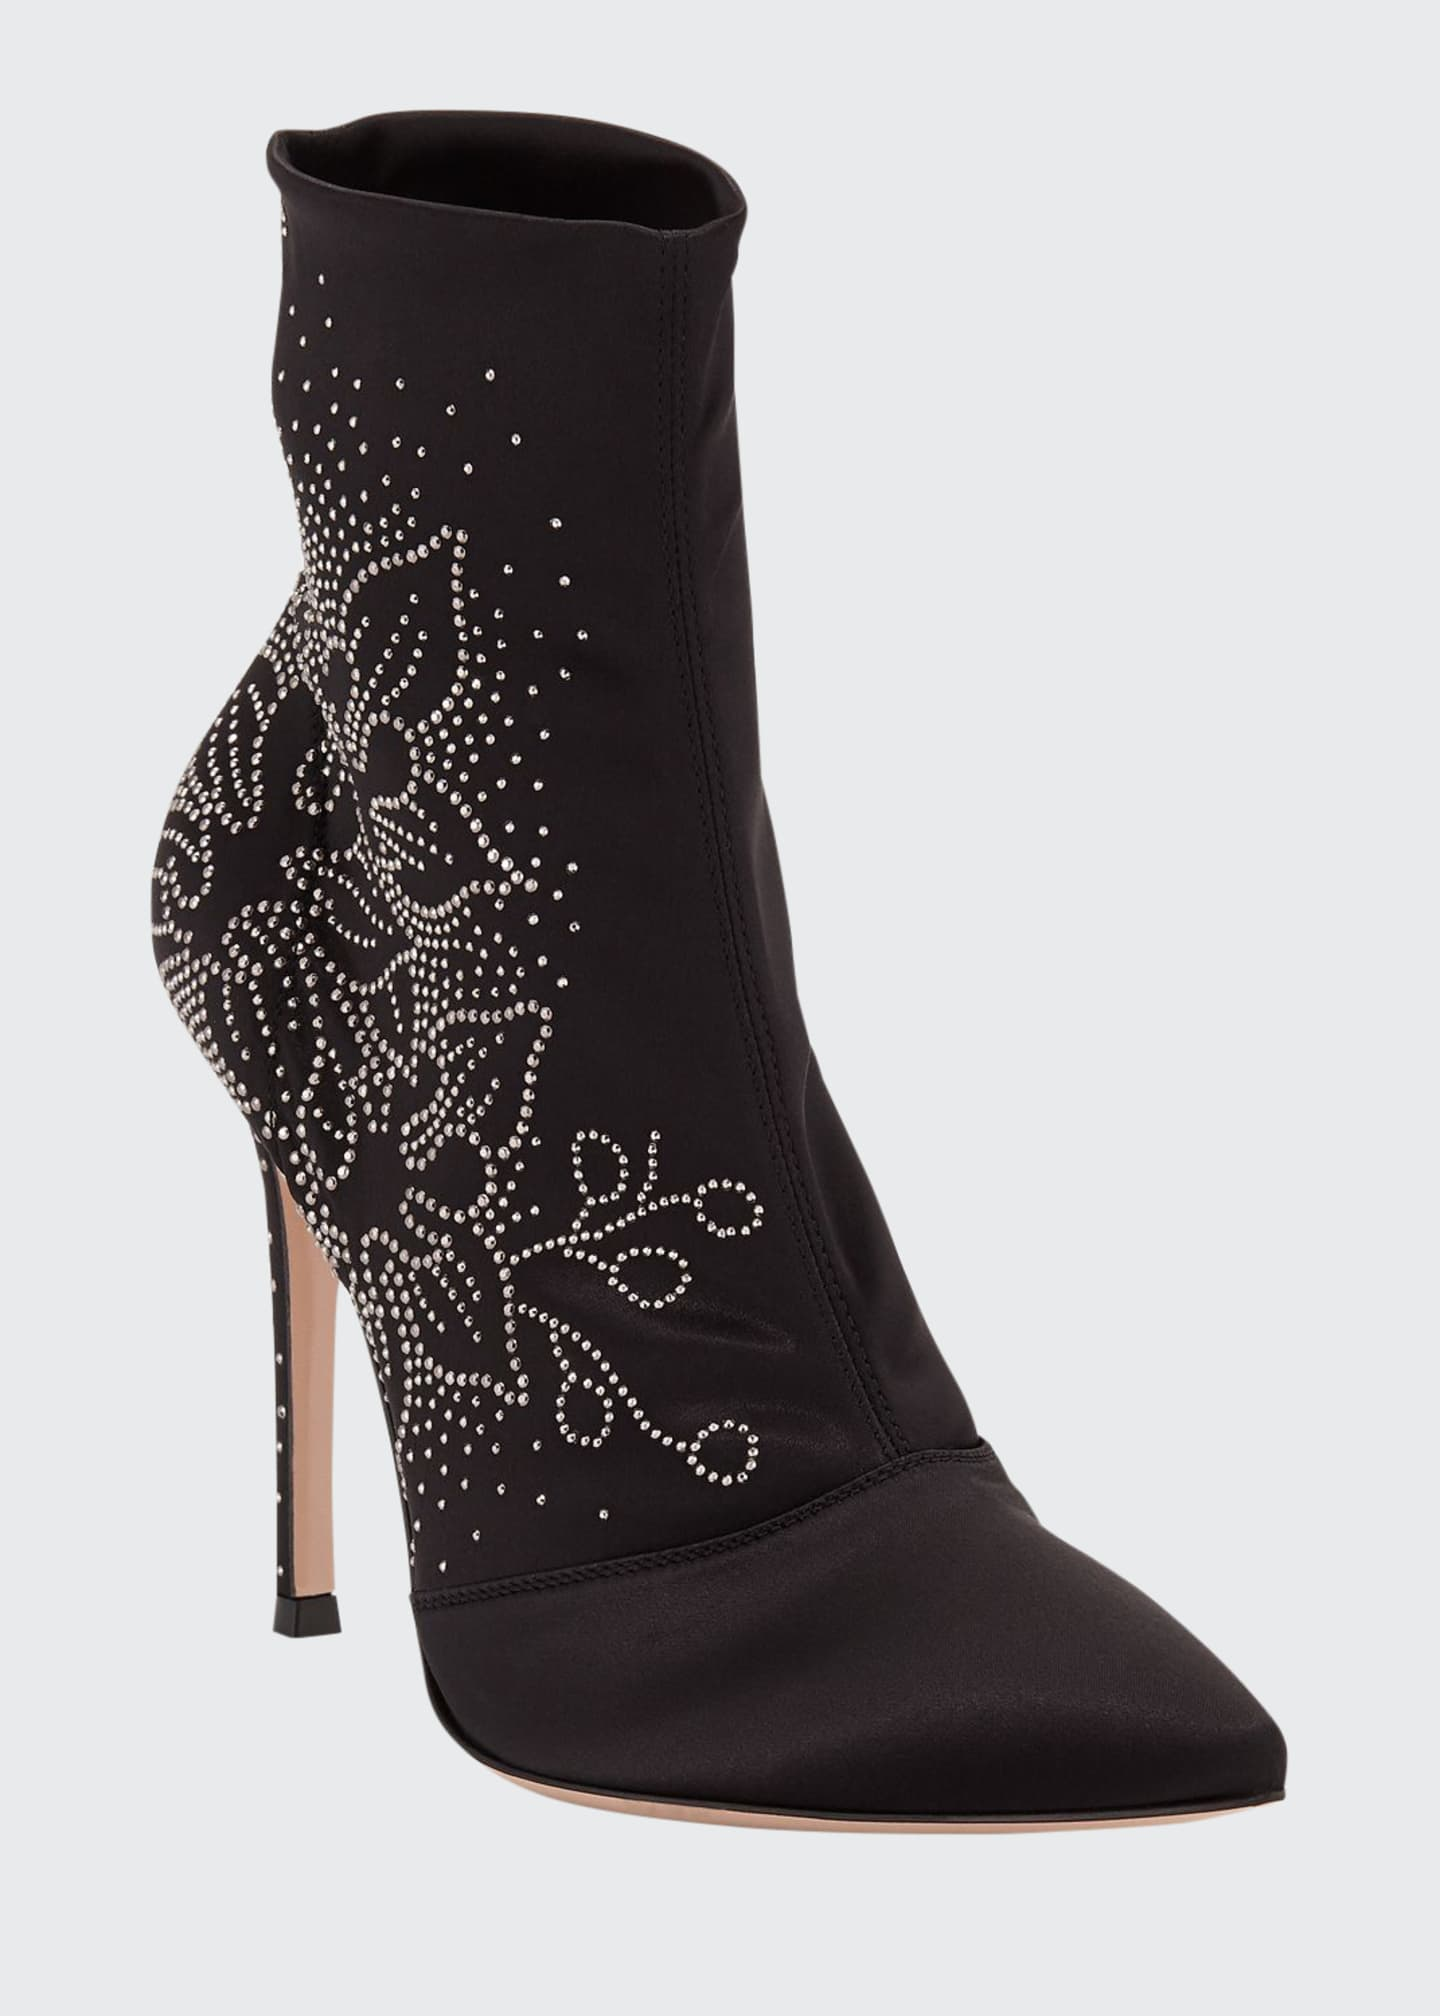 Gianvito Rossi Flower-Studded 105mm Booties